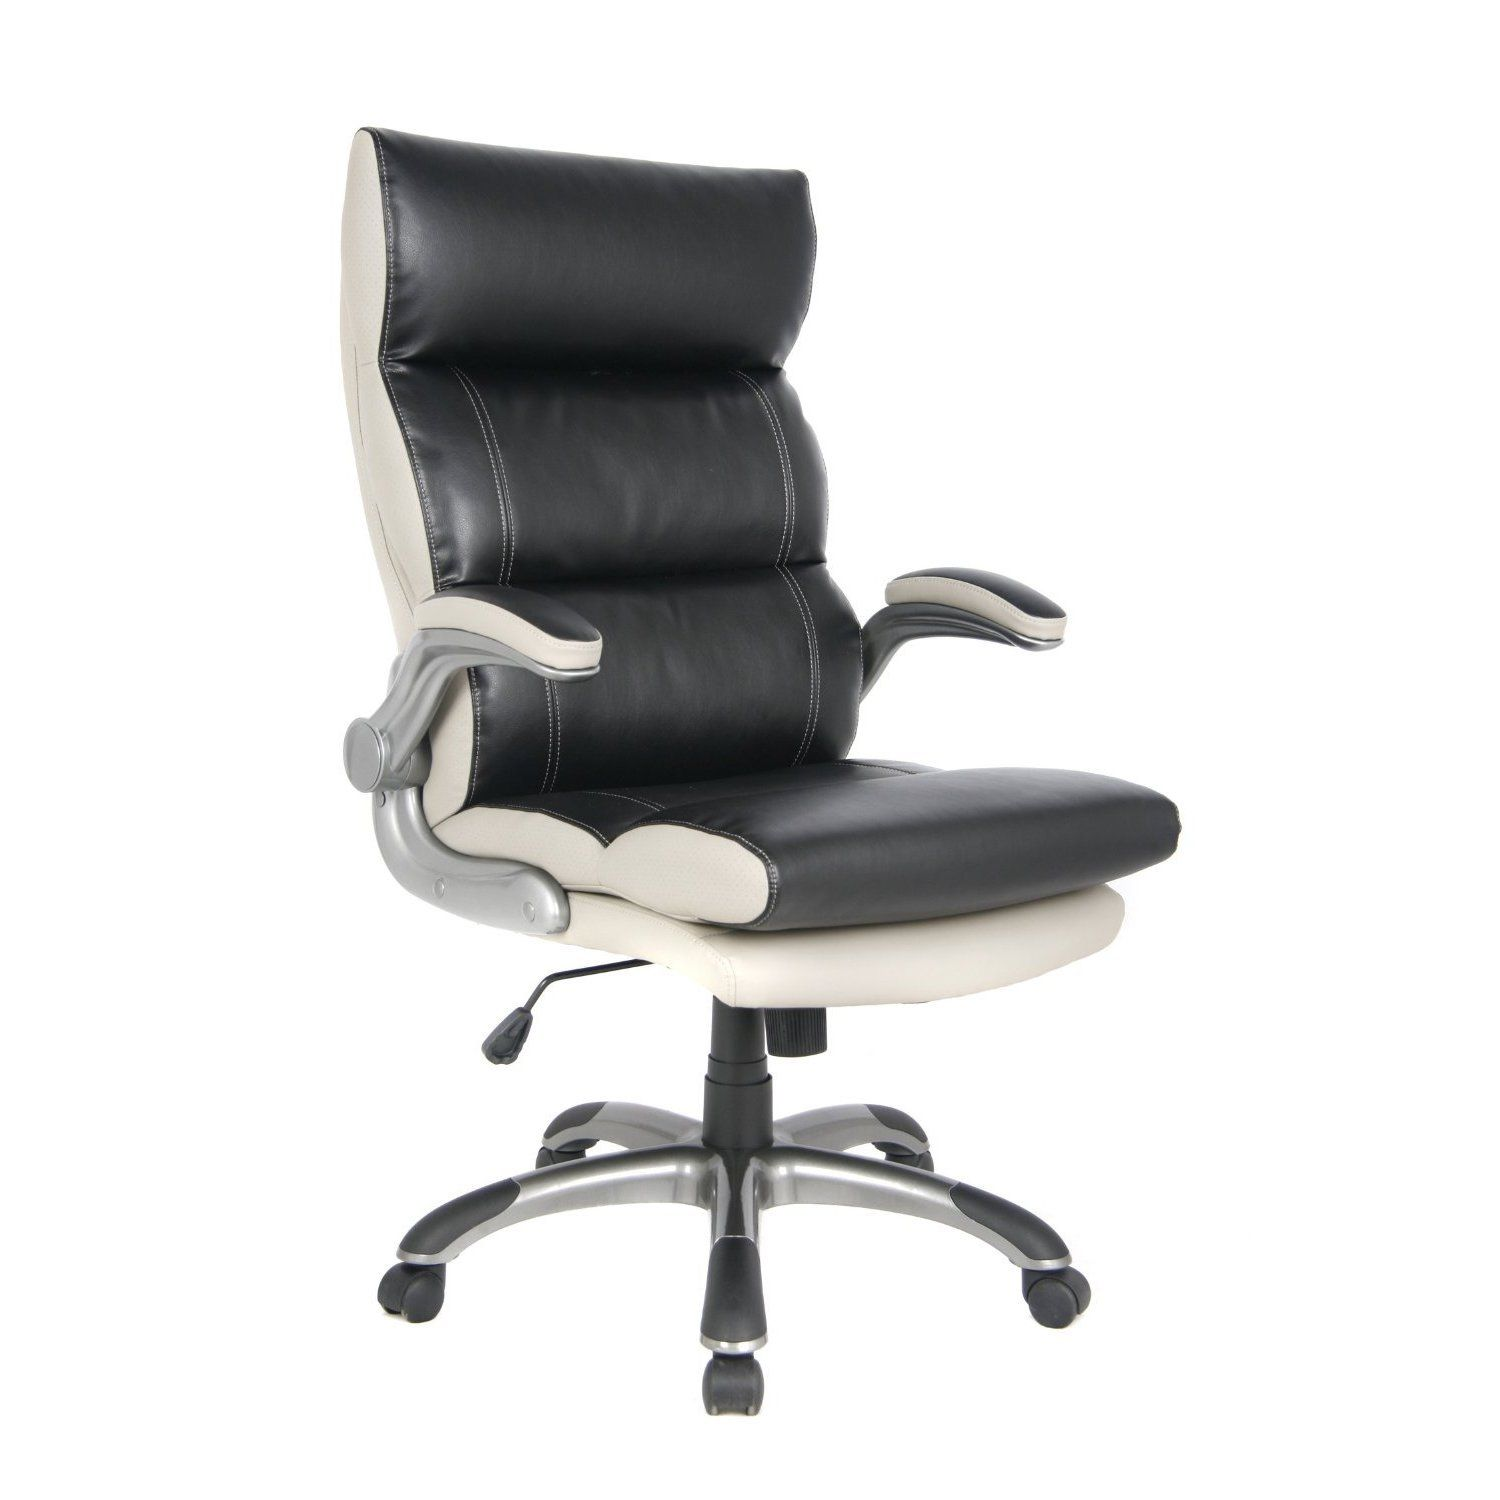 This ergonomic high back bonded leather managerial chair is